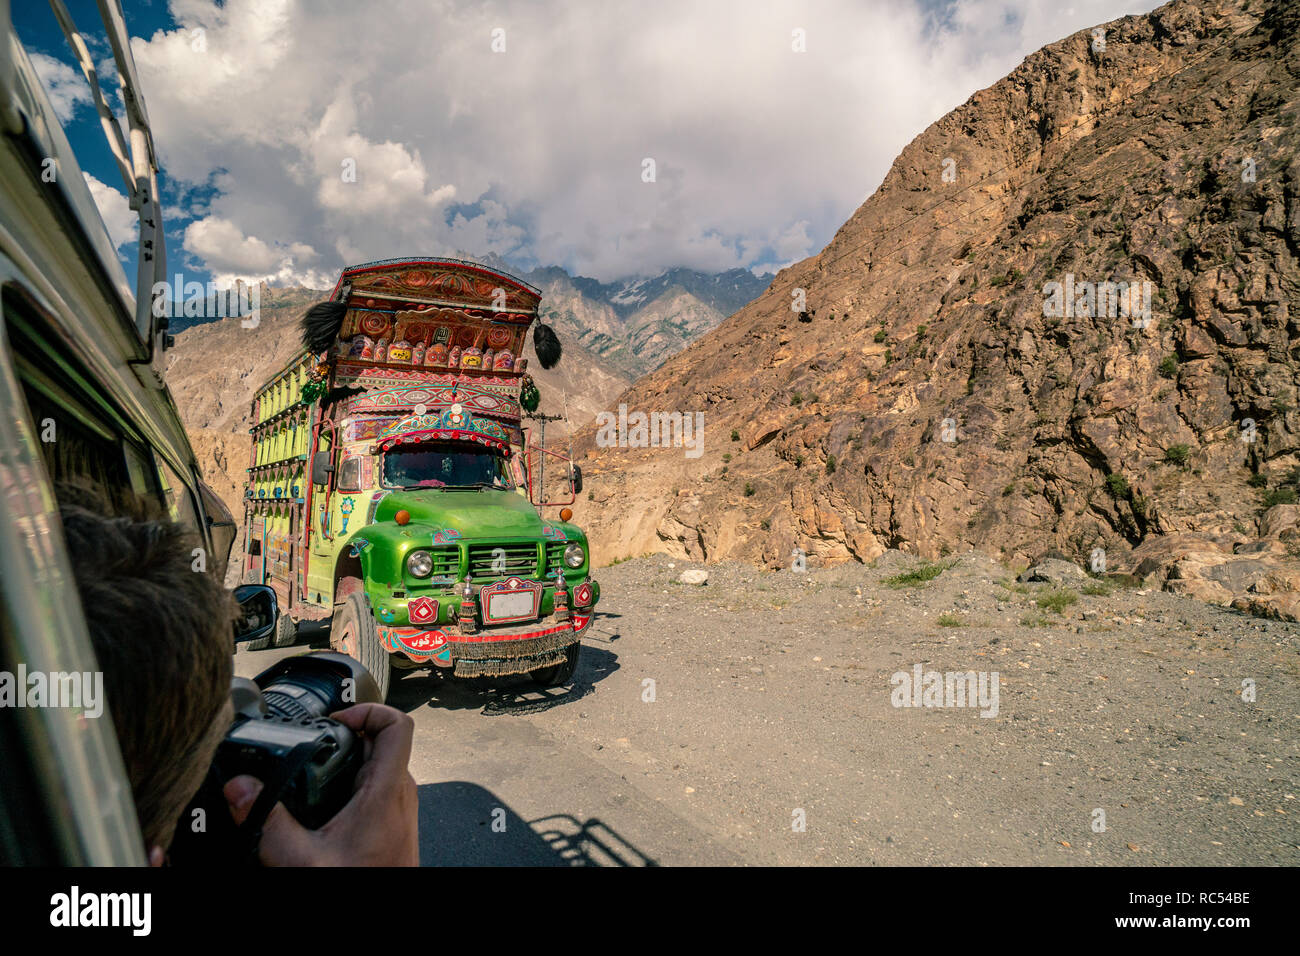 Traditional decorated truck in Pakistan on dangerous road in the mountains. - Stock Image